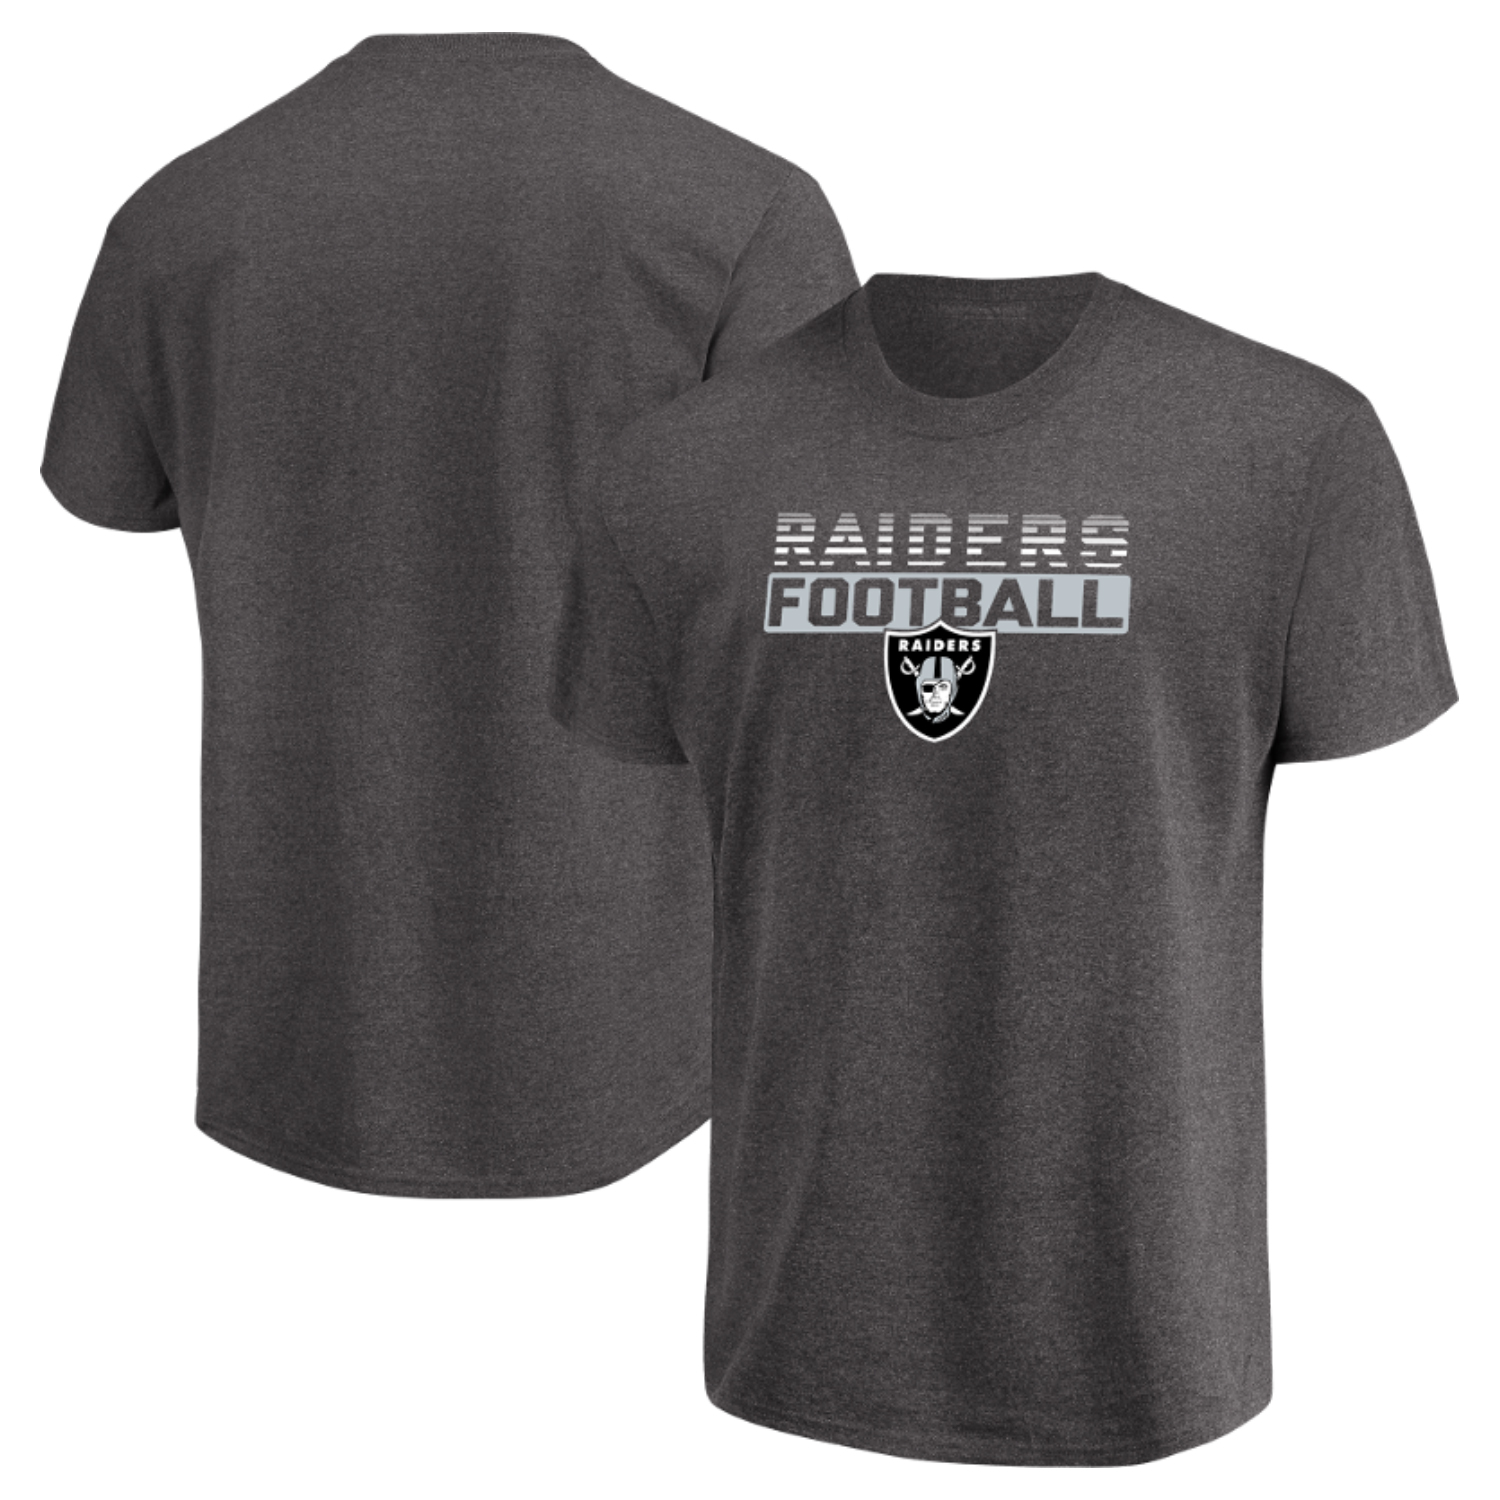 Men's Majestic Heathered Charcoal Oakland Raiders Come Into Play T-Shirt